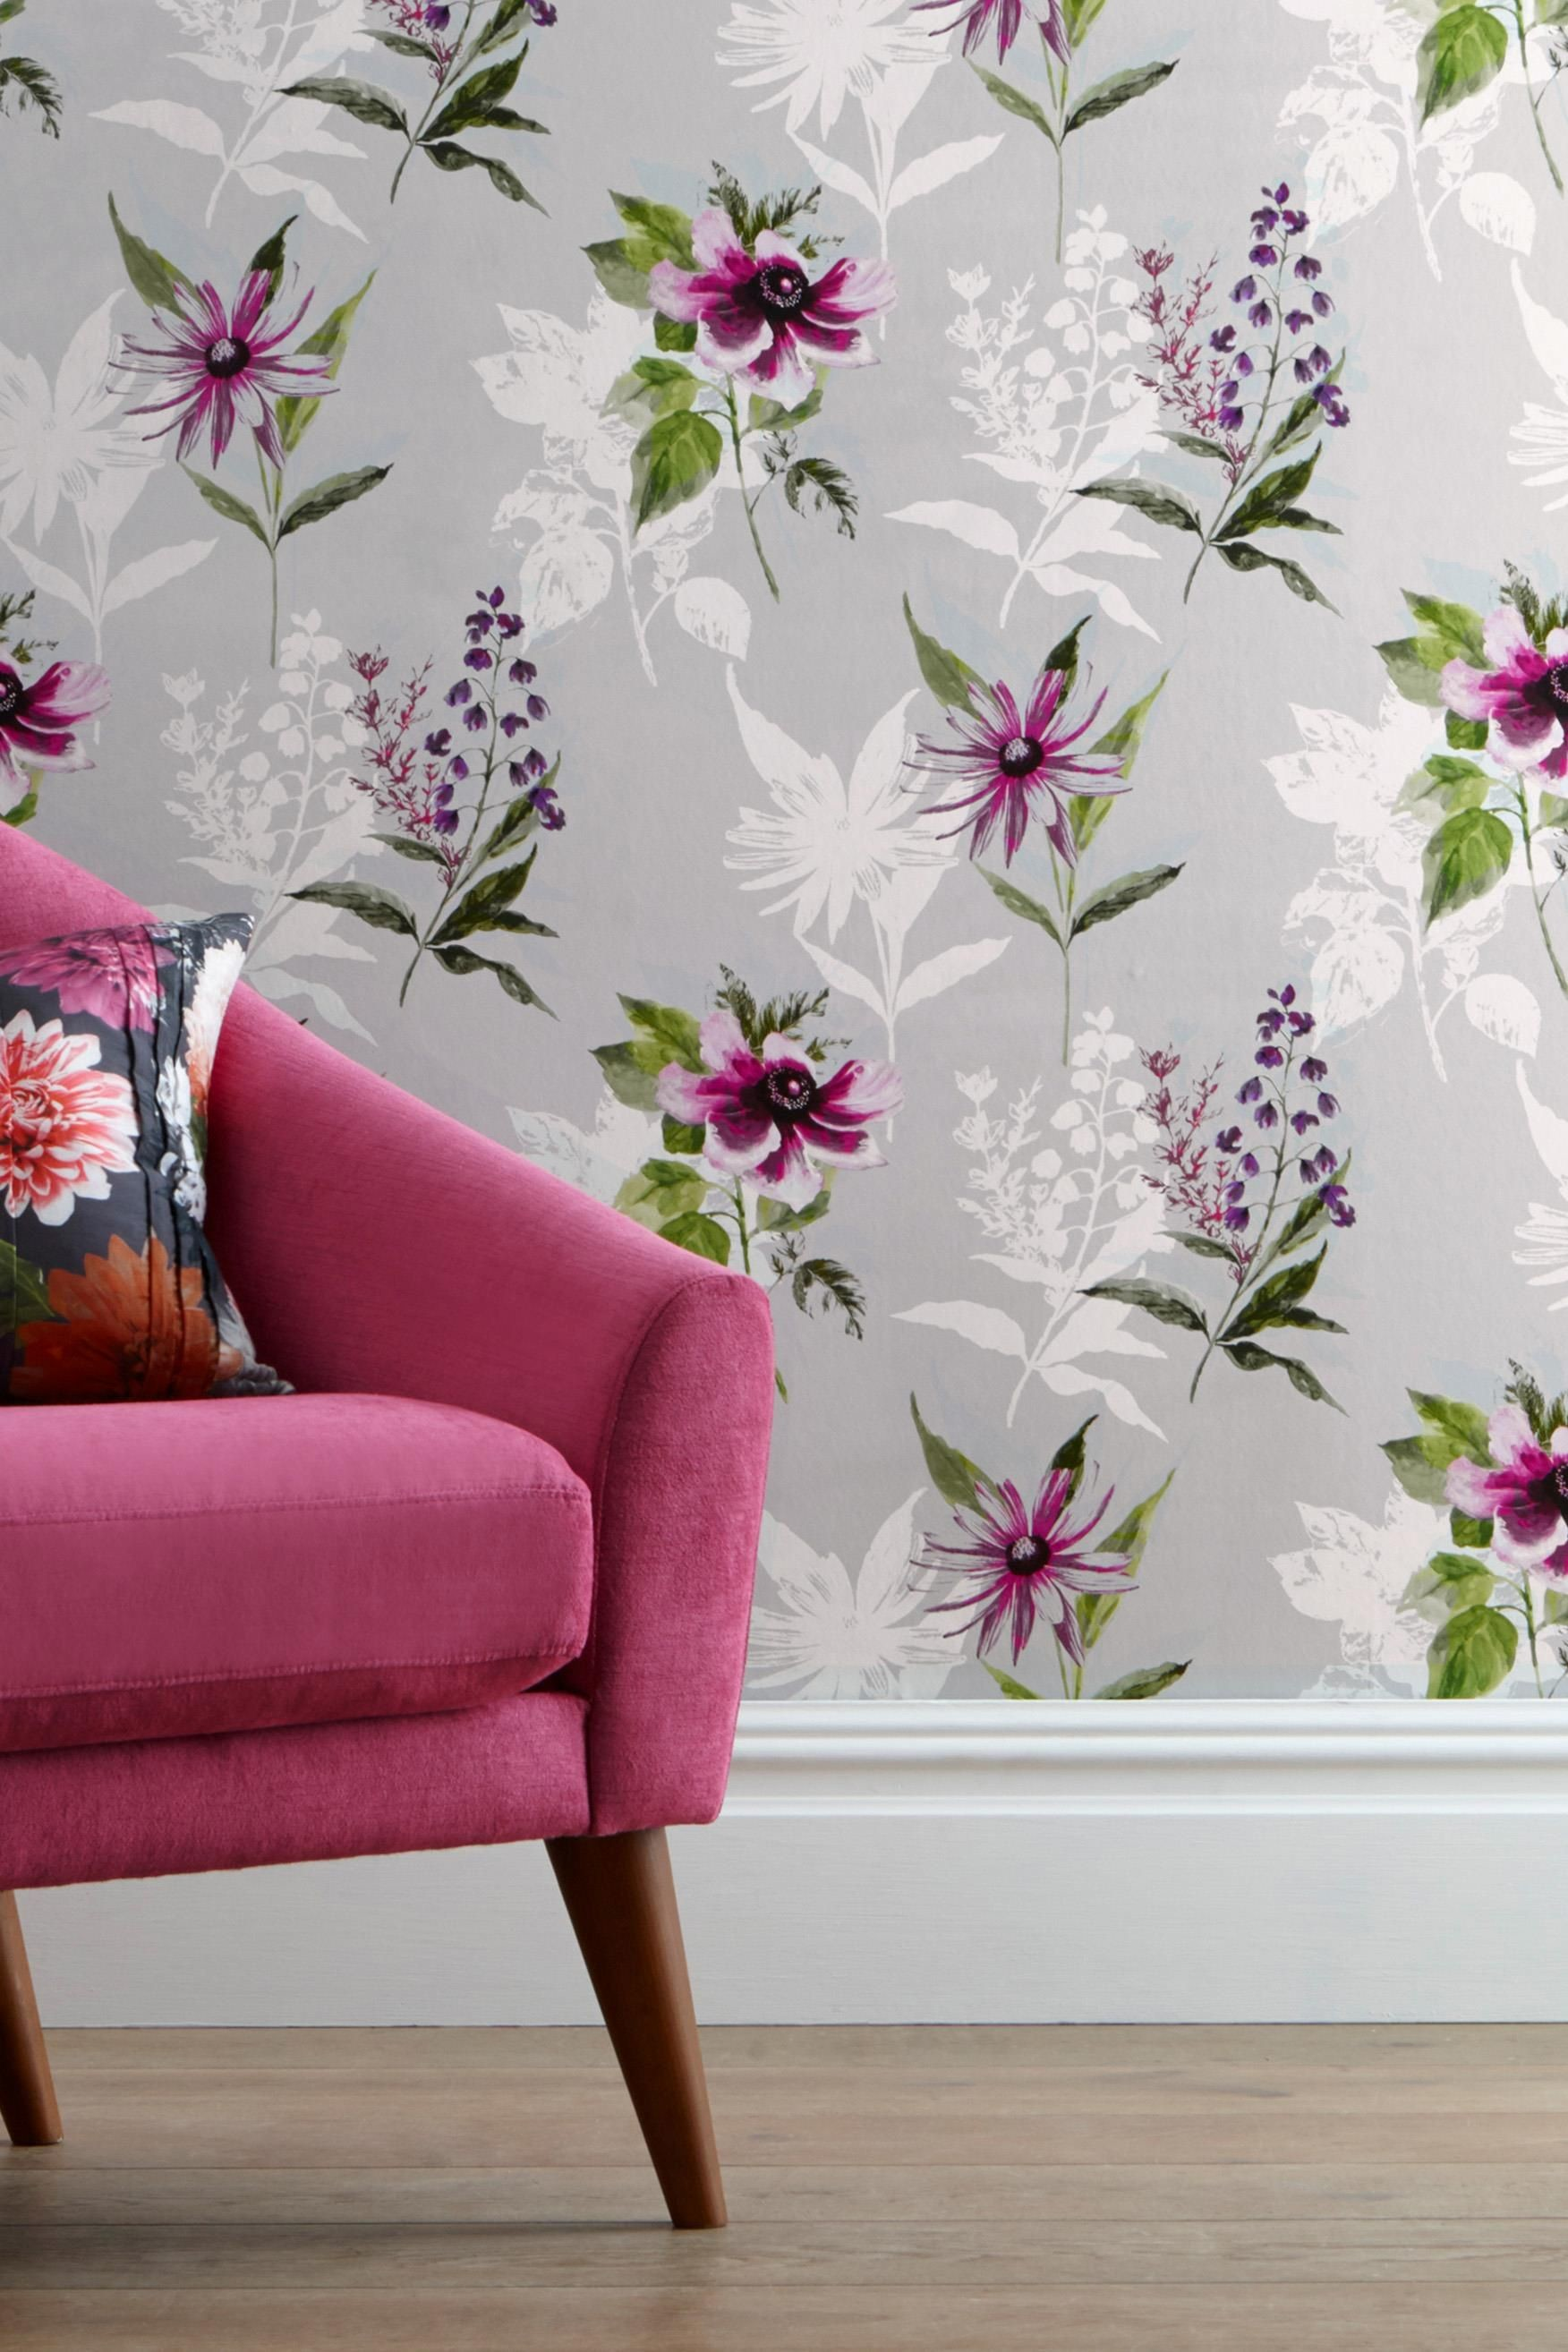 1752x2628 Vibrant Floral Wallpaper from Next UK - pick out darker pink/purple for  dramatic accent wall